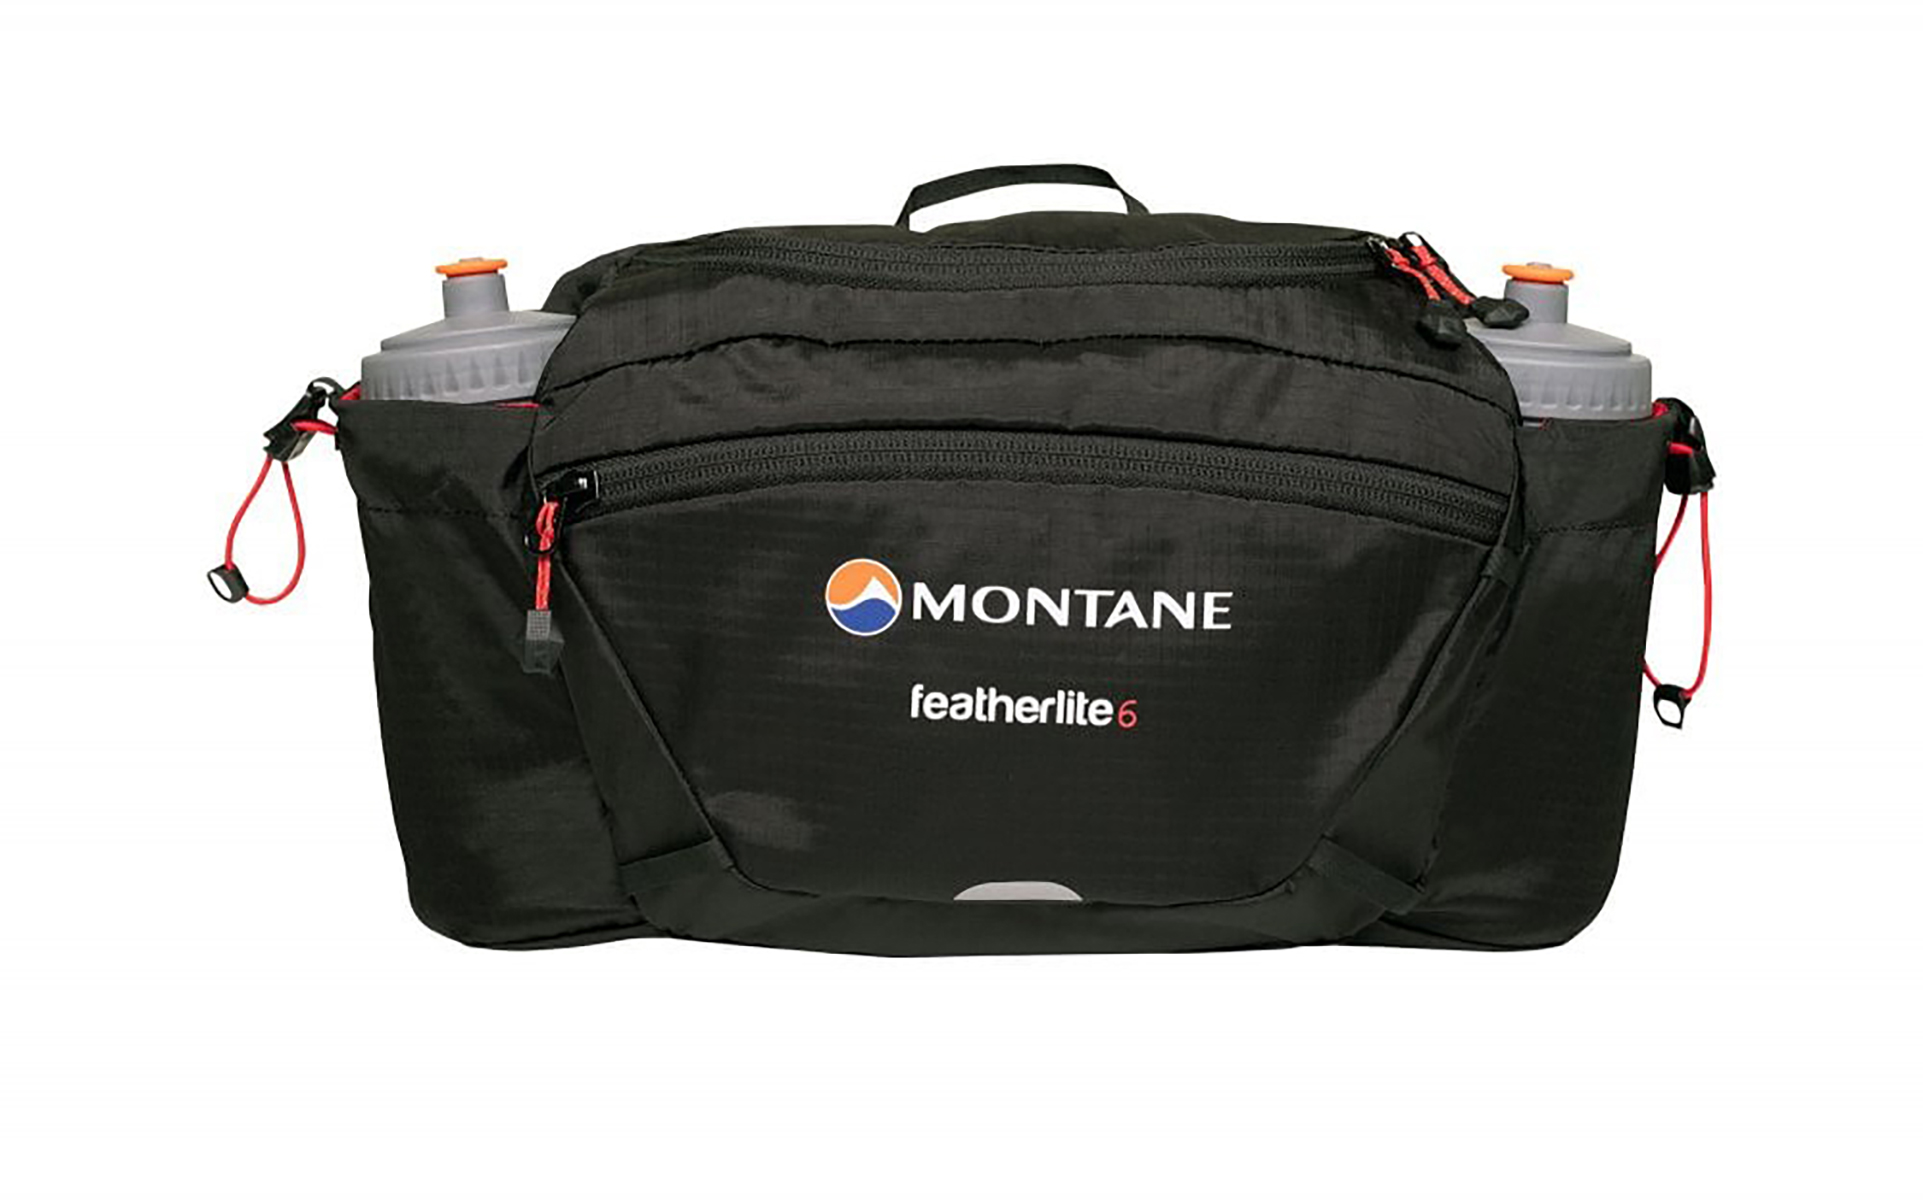 Montane Featherlite 6 Hydration Pack | item_misc